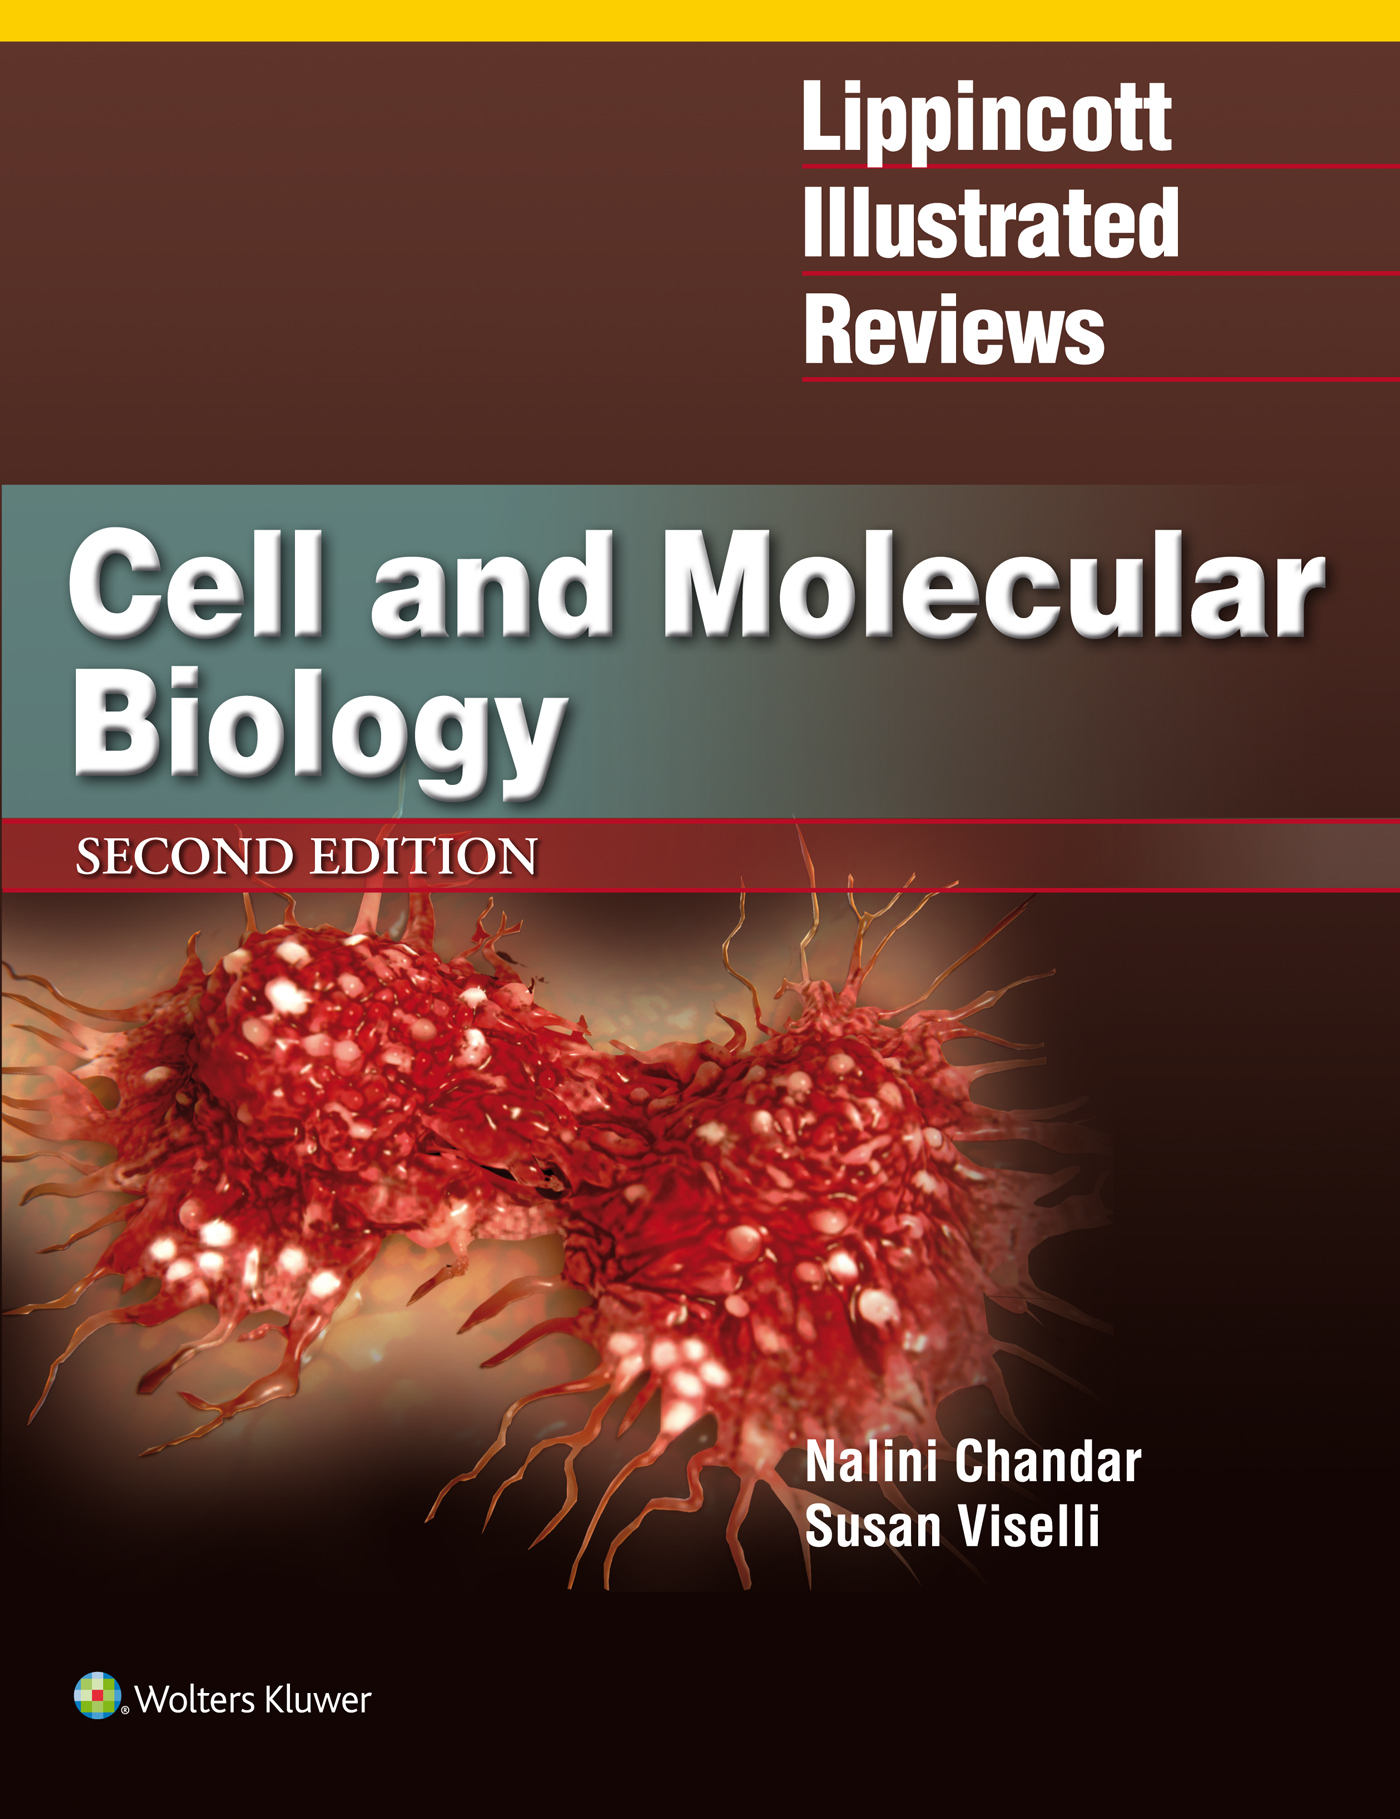 Lippincott's Illustrated Reviews: Cell and Molecular Biology